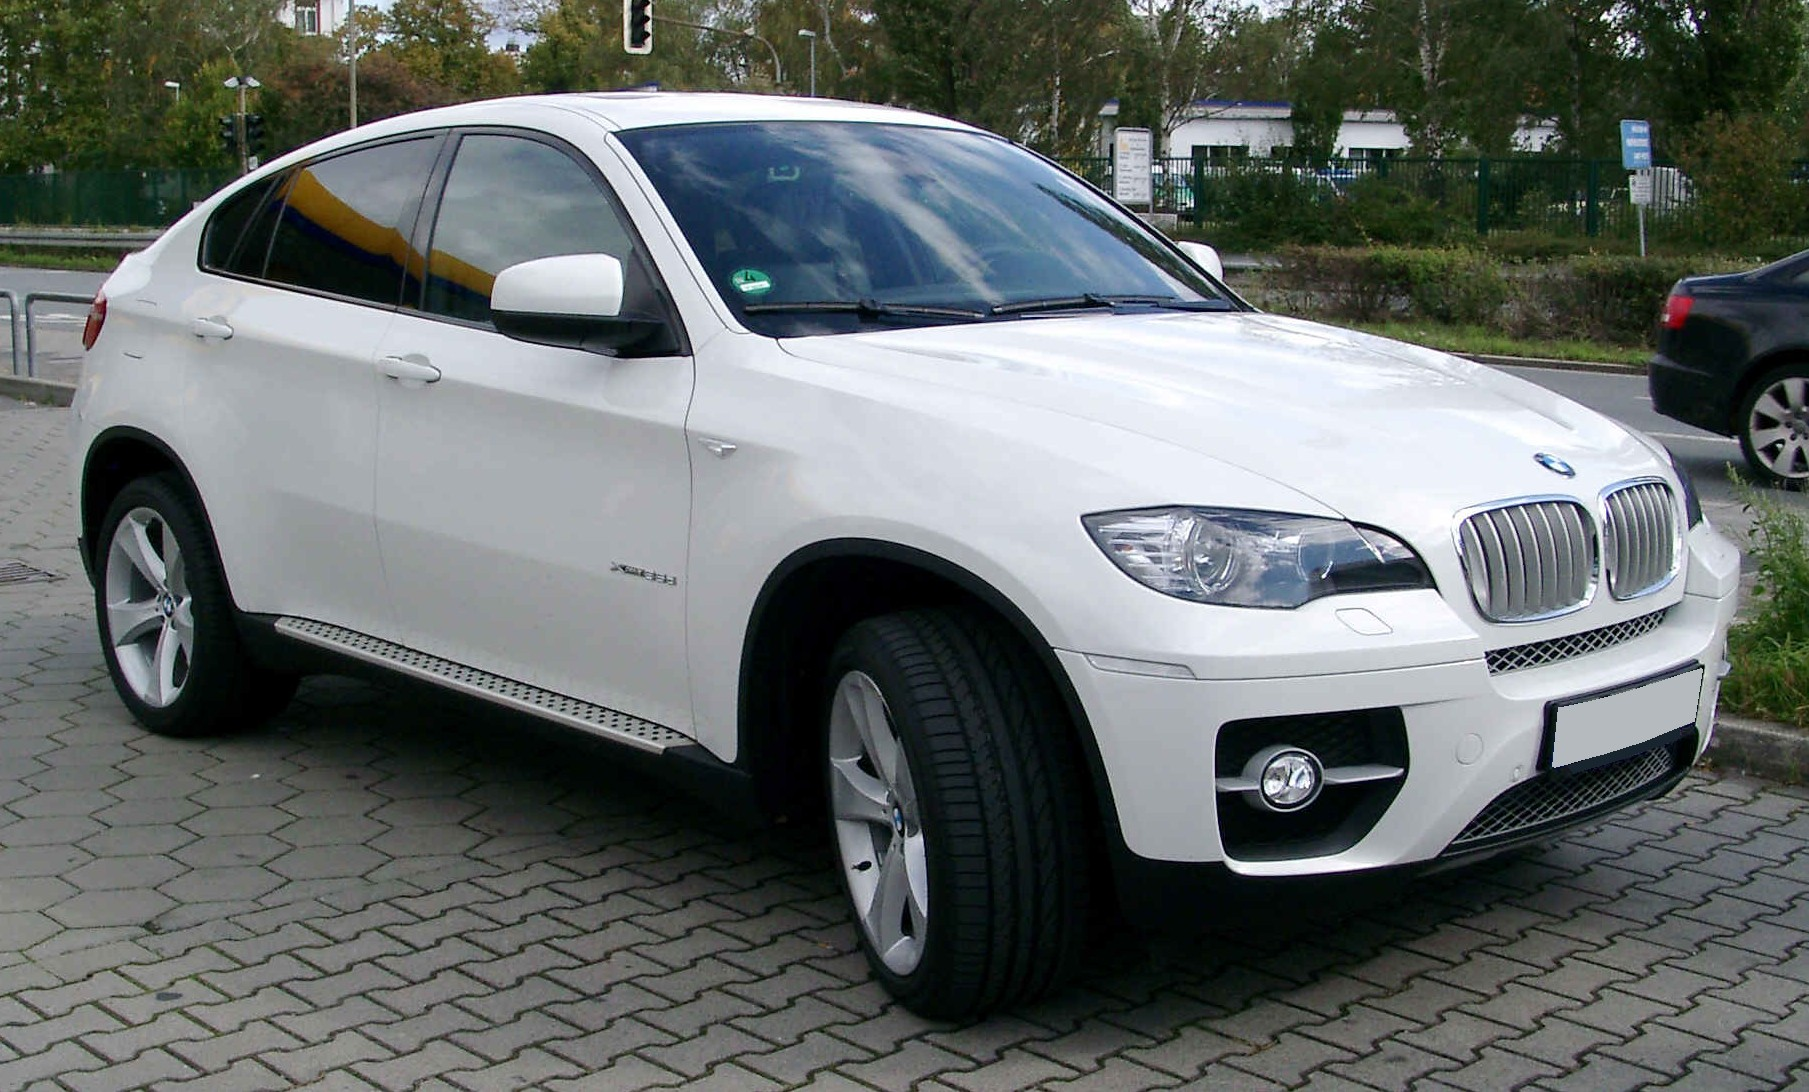 File Bmw X6 Front 20081002 Jpg Wikimedia Commons